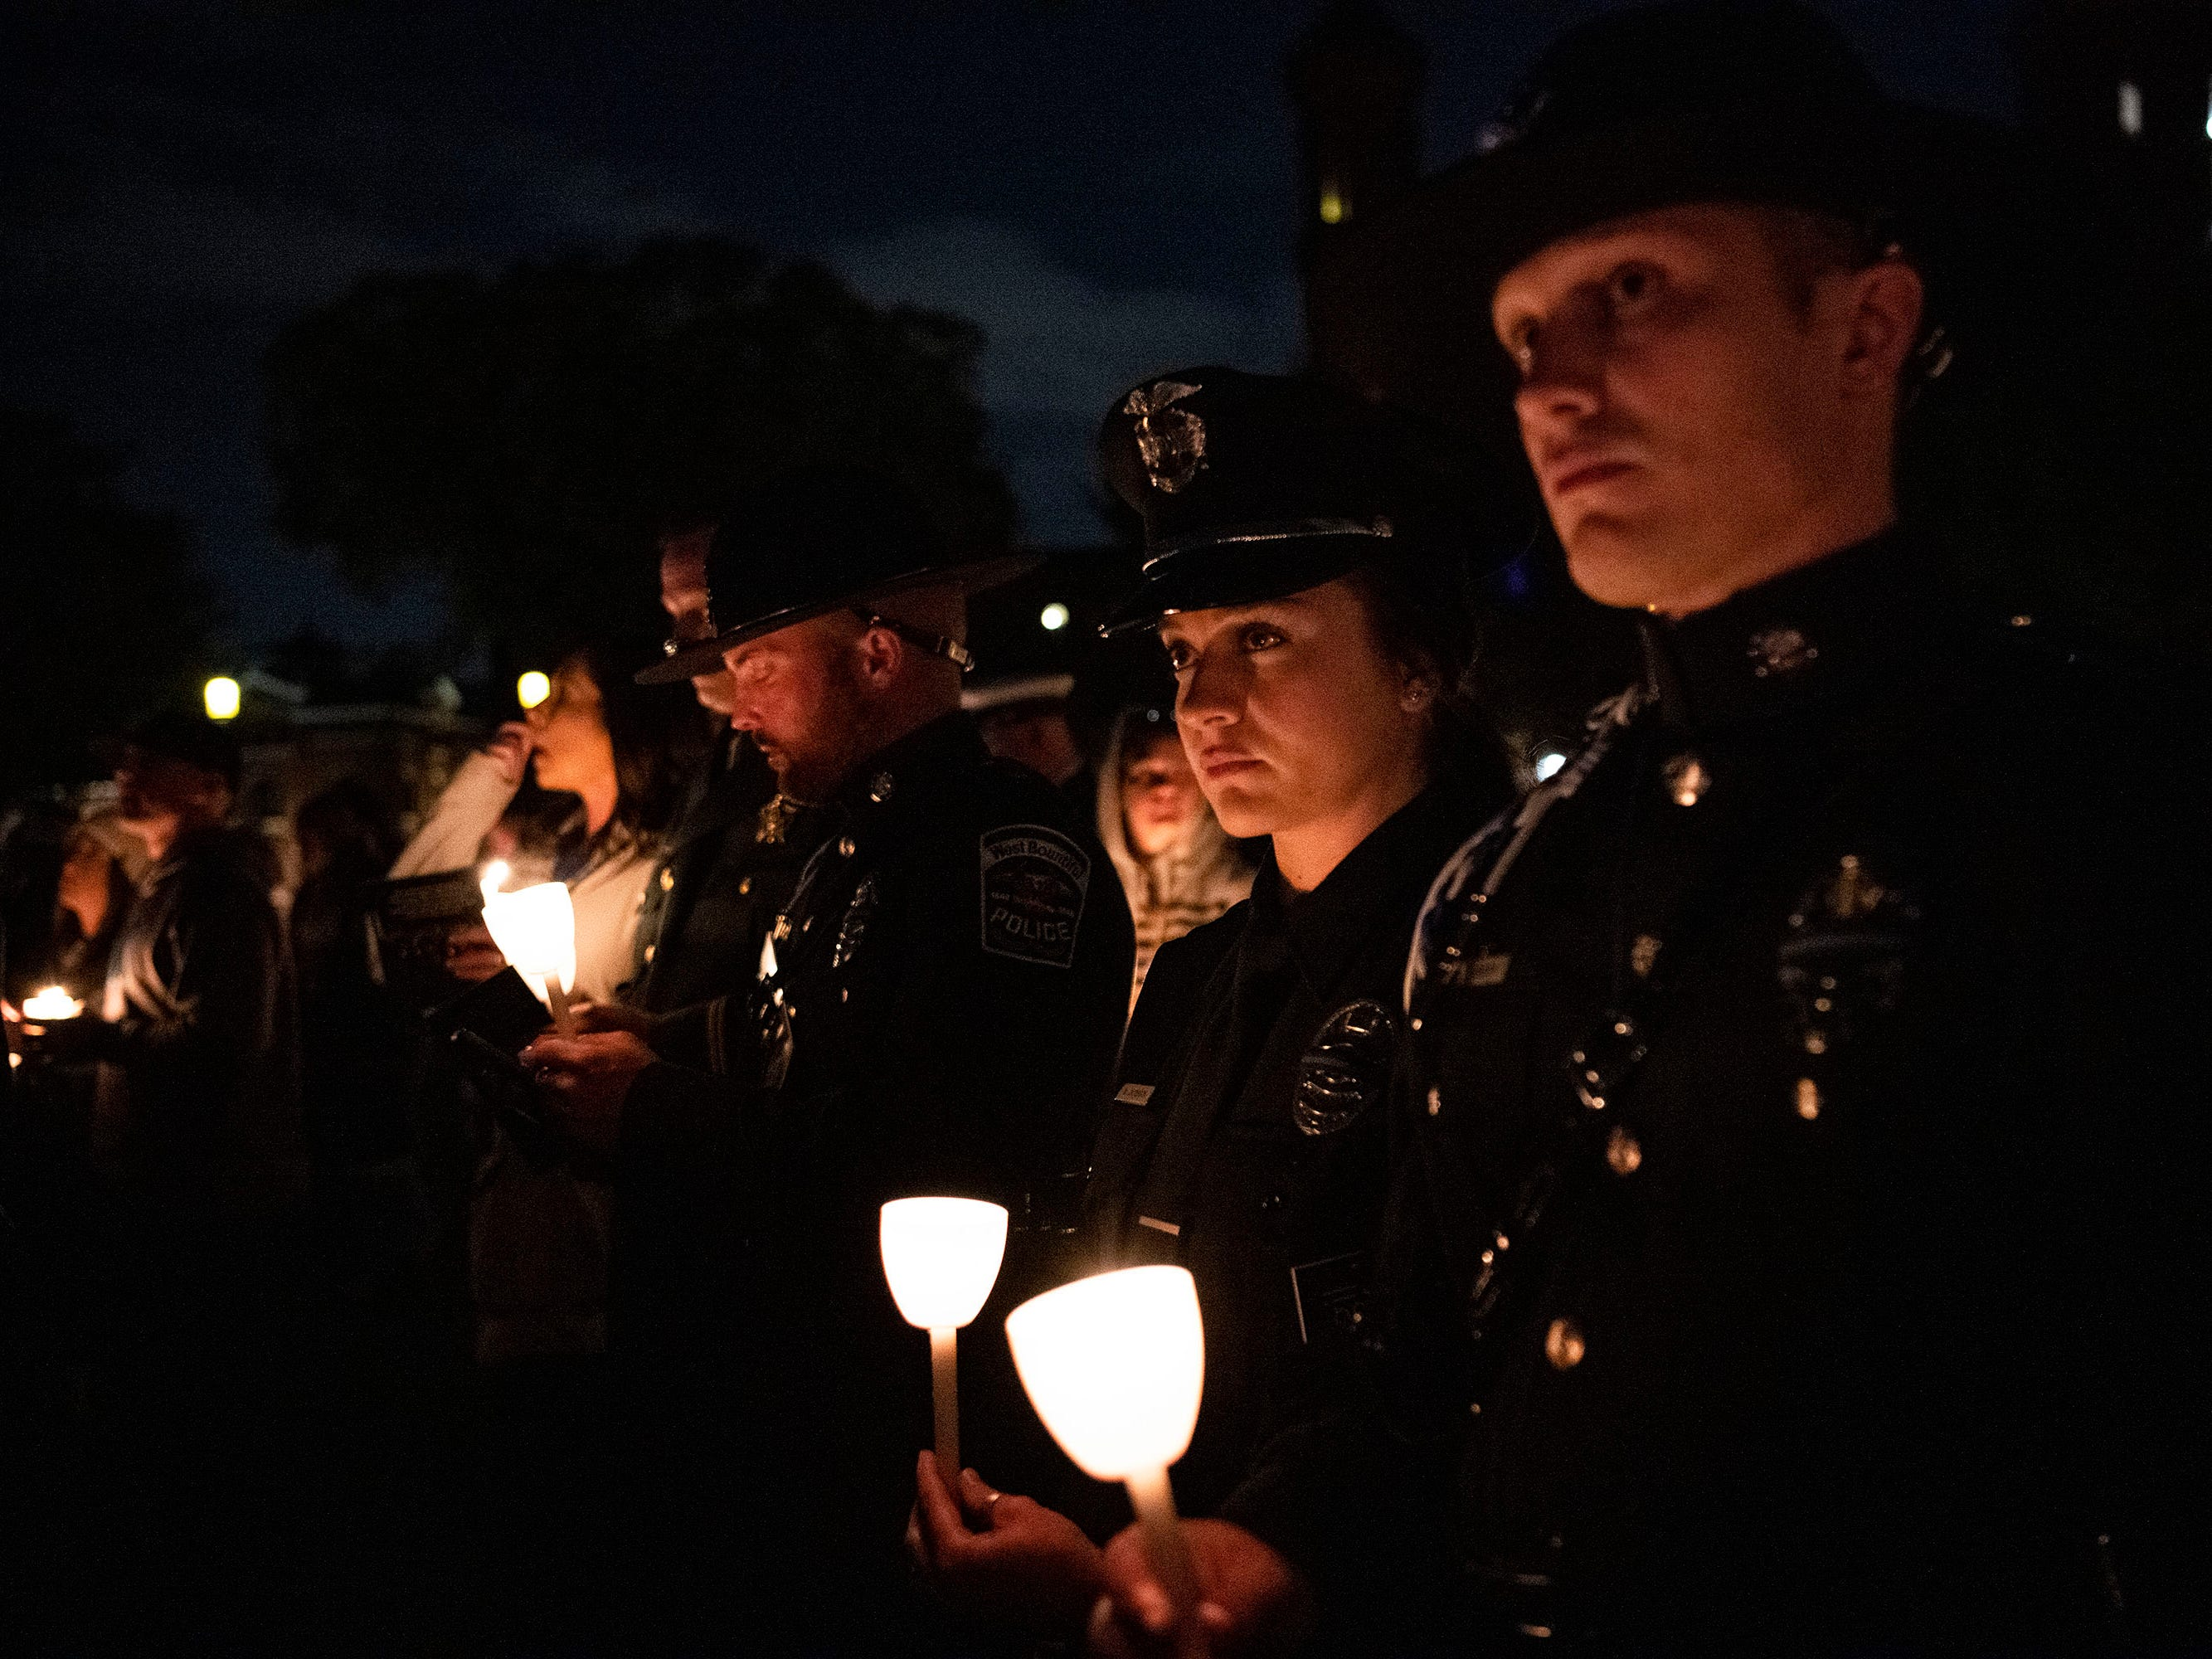 Law enforcement officers from all over the country joined thousands of attendees on the National Mall for a candlelight vigil to honor slain law enforcement officers as part of Police Week in the nation's capital.